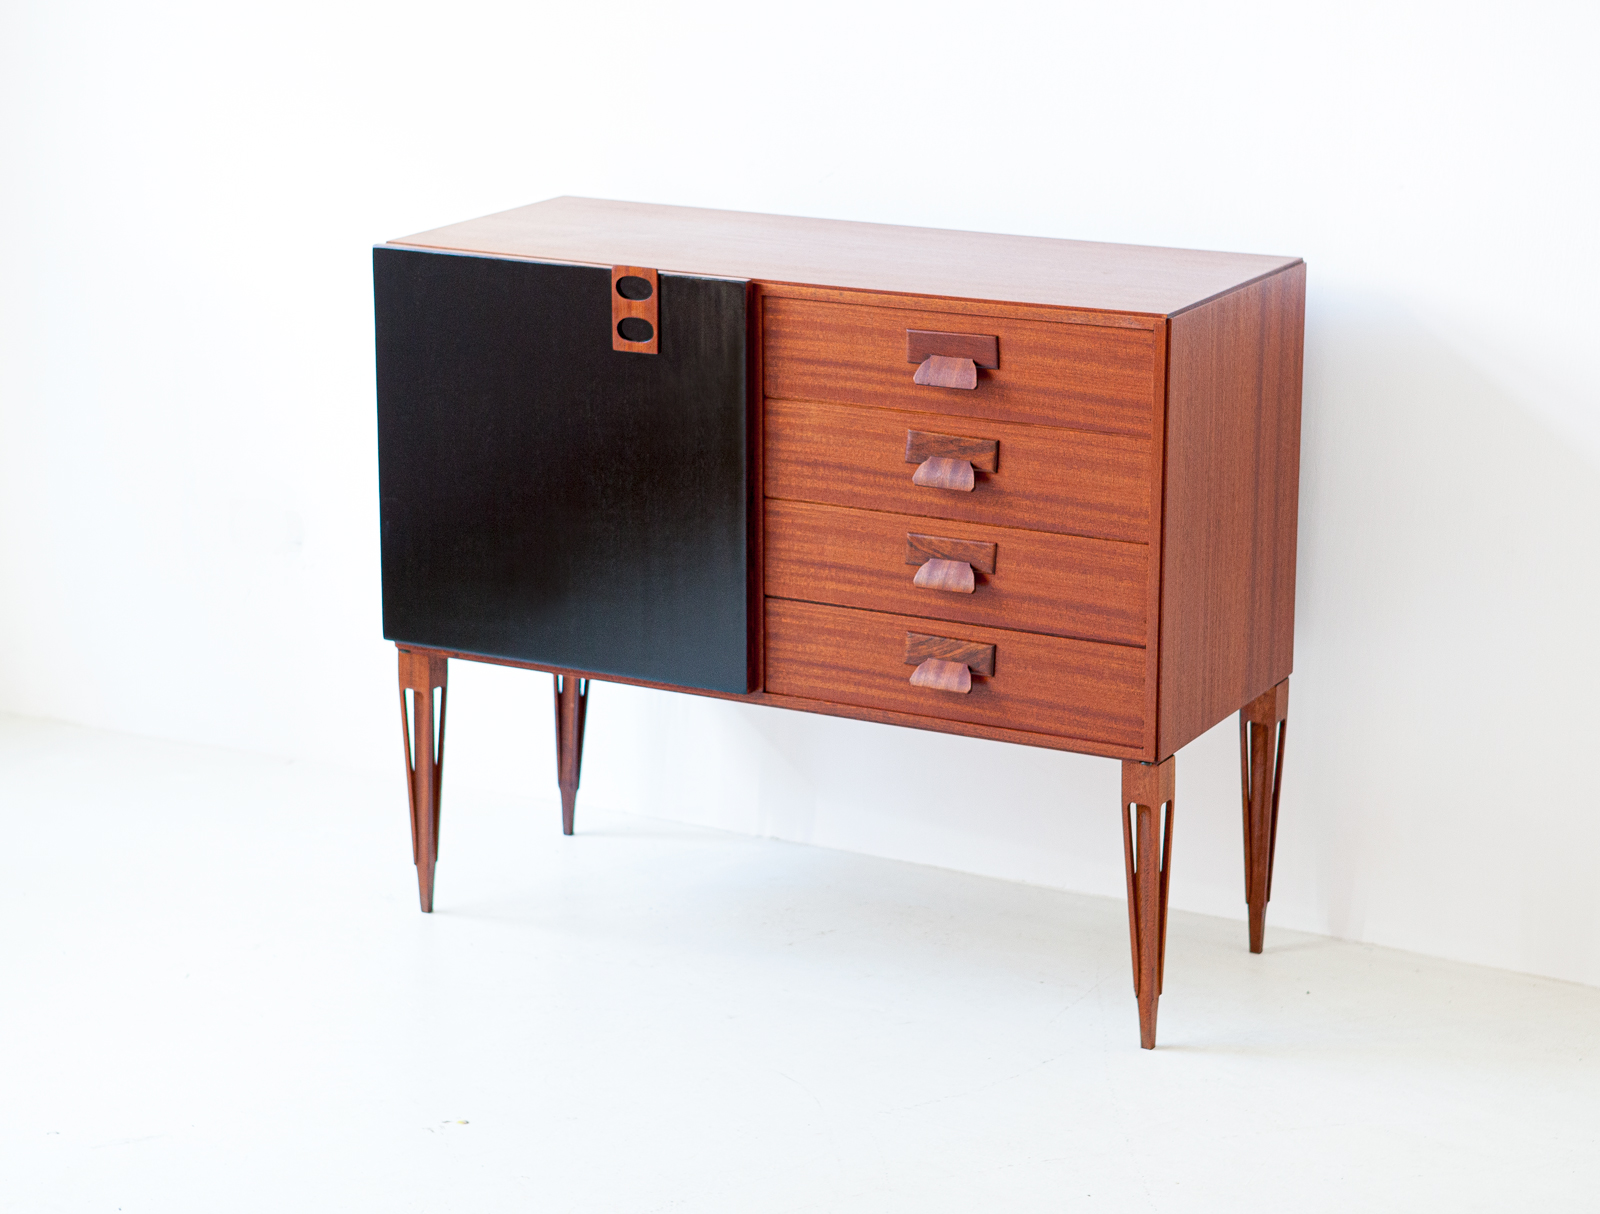 1950s-italian-mahogany-sideboard-with-drawers-by-fratelli-proserpio-1-st121